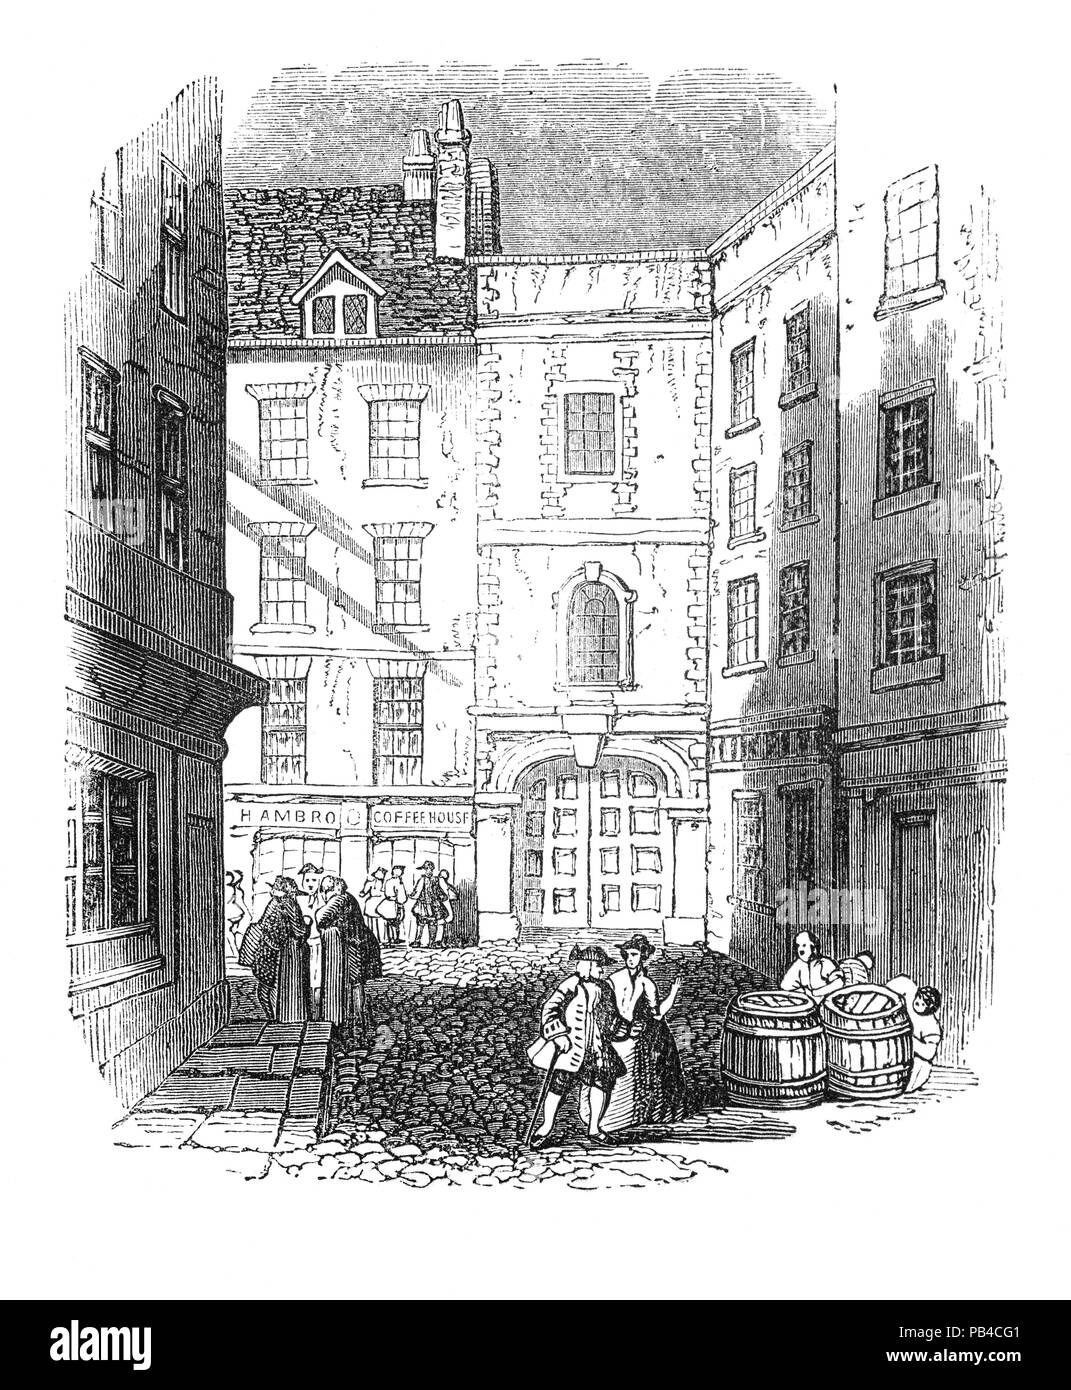 Old Trinity House, London, England. It came into being in 1514 by Royal Charter granted by Henry VIII under the name 'The Master, Wardens, and Assistants of the Guild, Fraternity, or Brotherhood of the most glorious and undivided Trinity, and of St. Clement in the Parish of Deptford-Strond in the County of Kent.'  The charter came as a result of a petition put forward on 19 March 1513 by a guild of Deptford-based mariners who were troubled by the poor conduct of unregulated pilots on the Thames and asked the king for licence to regulate pilotage. - Stock Image